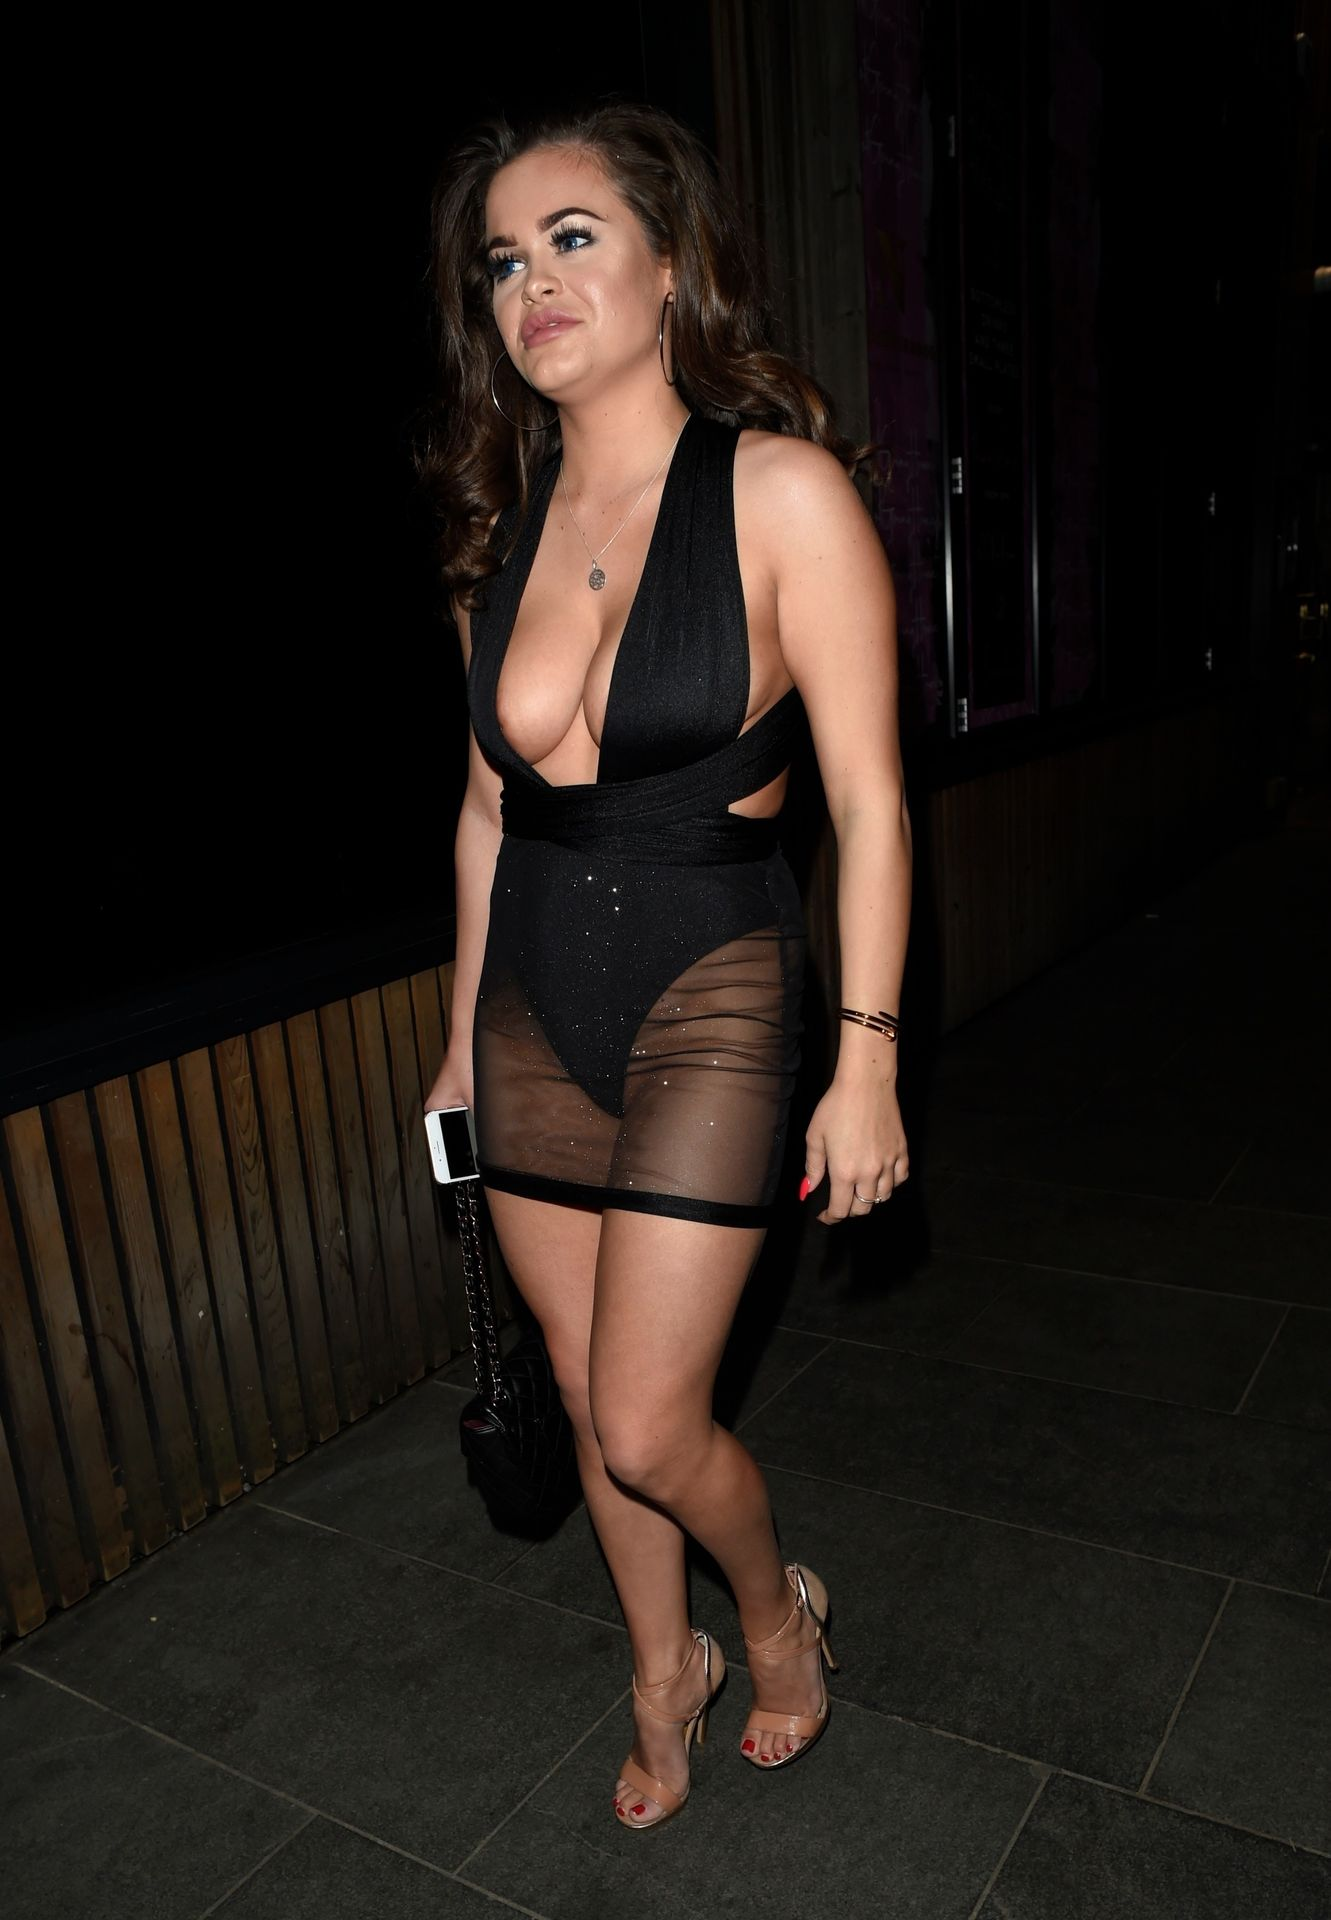 Rhianne Saxby & Sarah Longbottom Look Hot In Manchester 0005